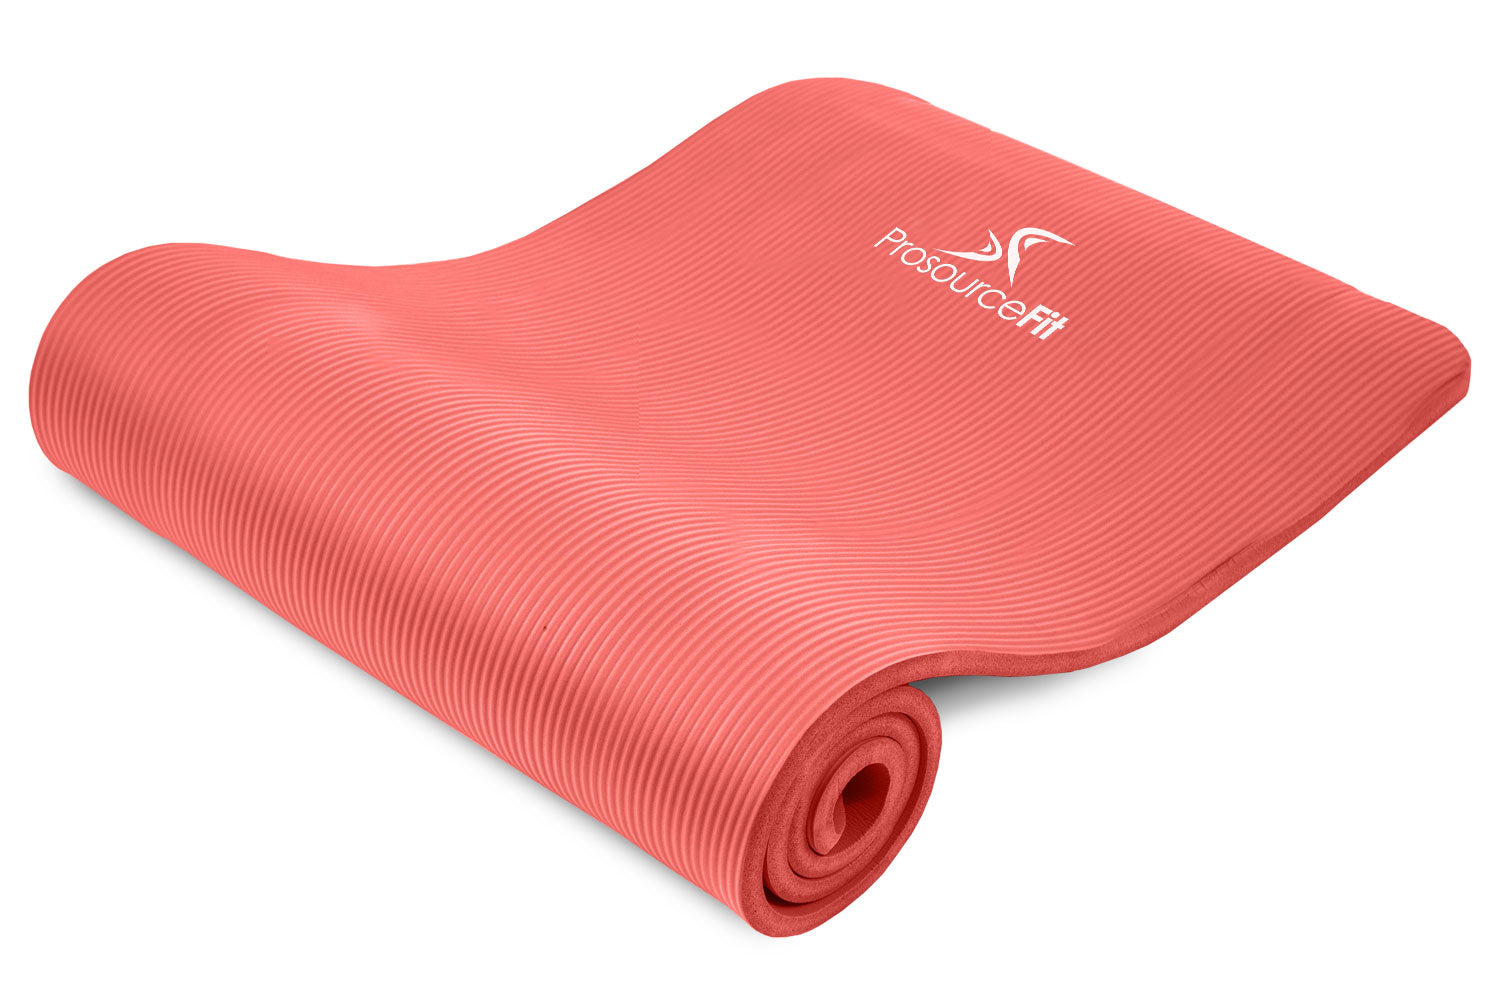 Red Extra Thick Yoga and Pilates Mat 1/2 inch